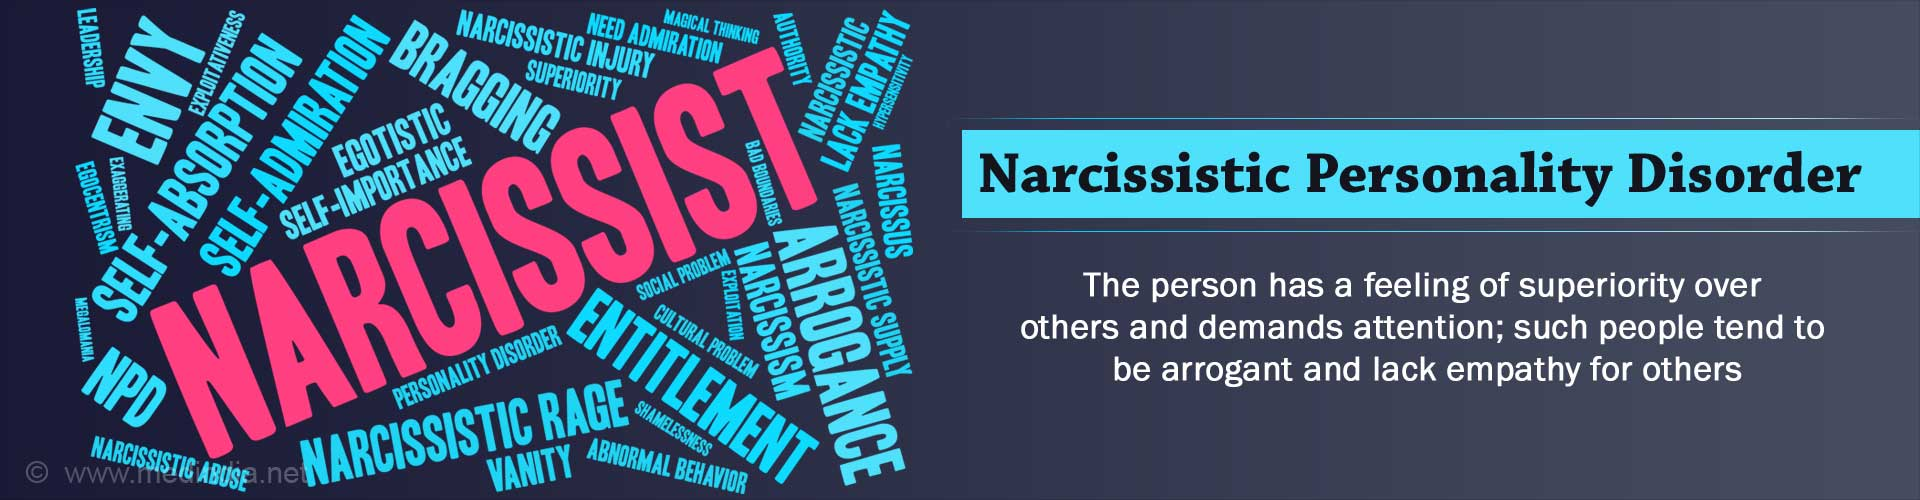 Narcissistic Personality Disorder - Causes, Symptoms, Complications, Diagnosis, Treatment